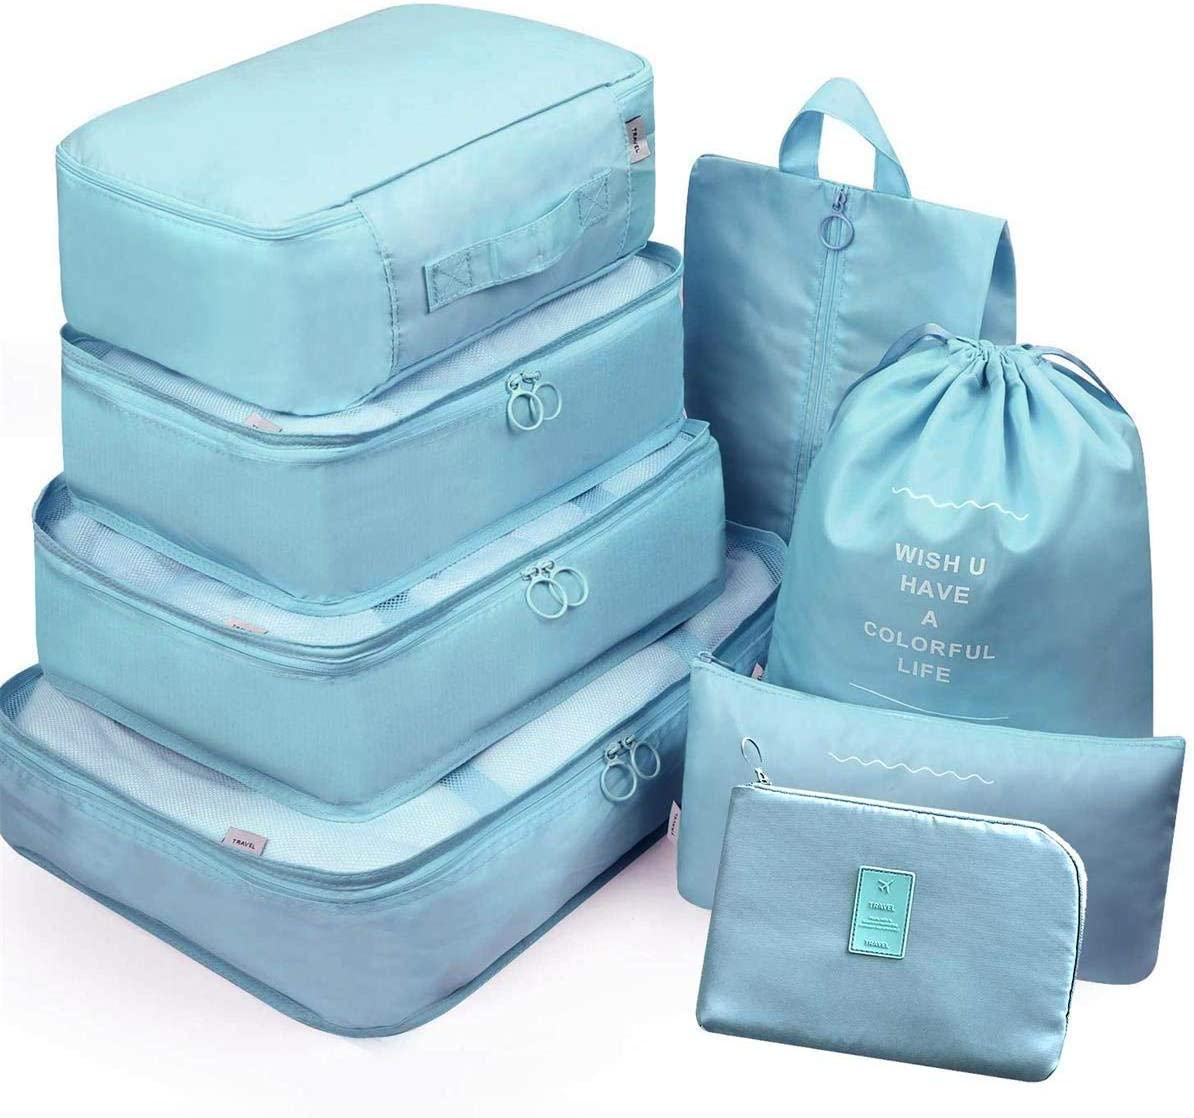 7Pcs Waterproof Travel Storage Bags Clothes Packing Cube Luggage Organizer Pouch (8Gray blue)